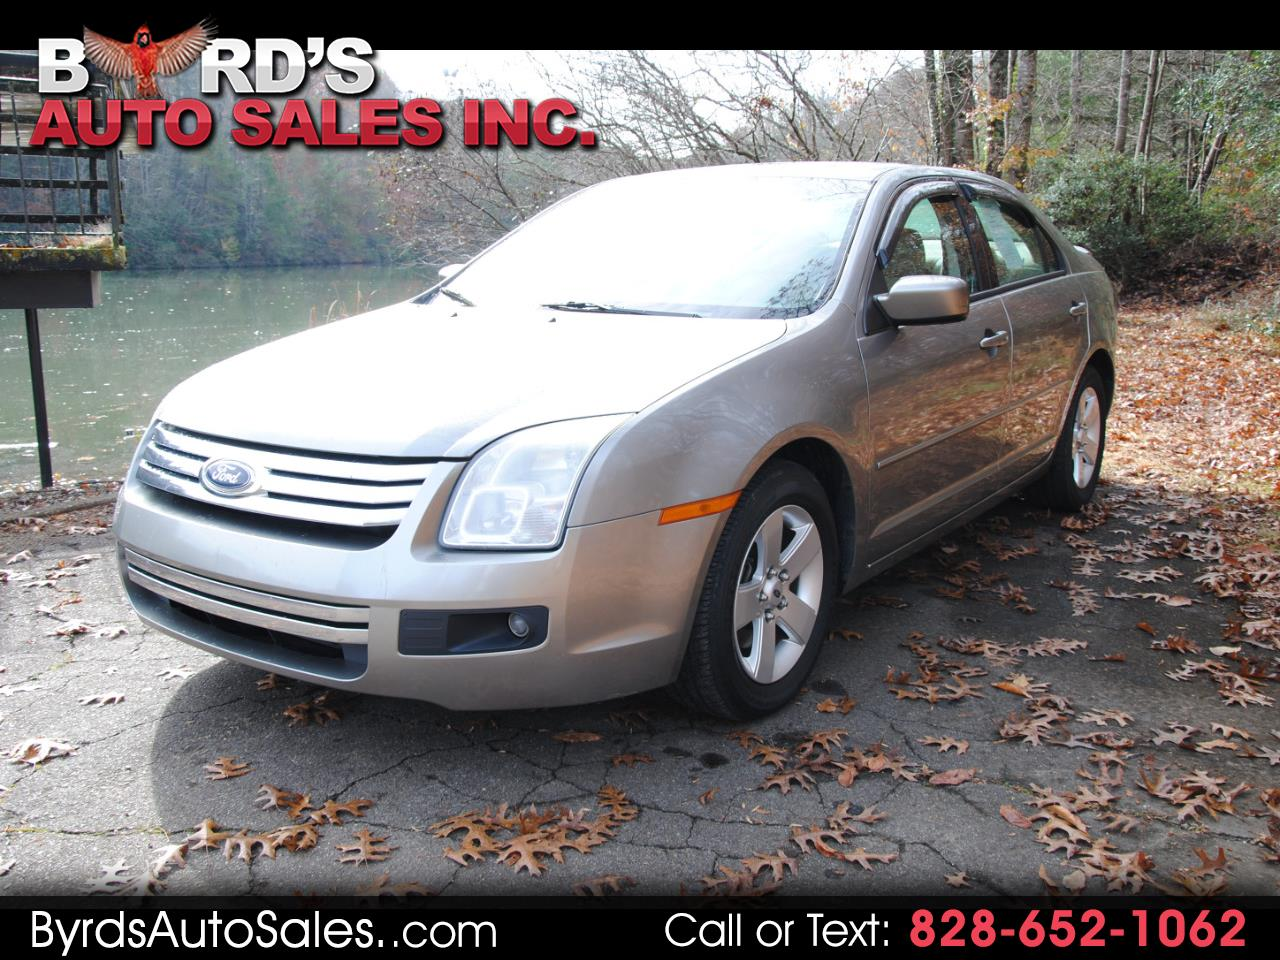 2008 Ford Fusion 4dr Sdn I4 SE FWD